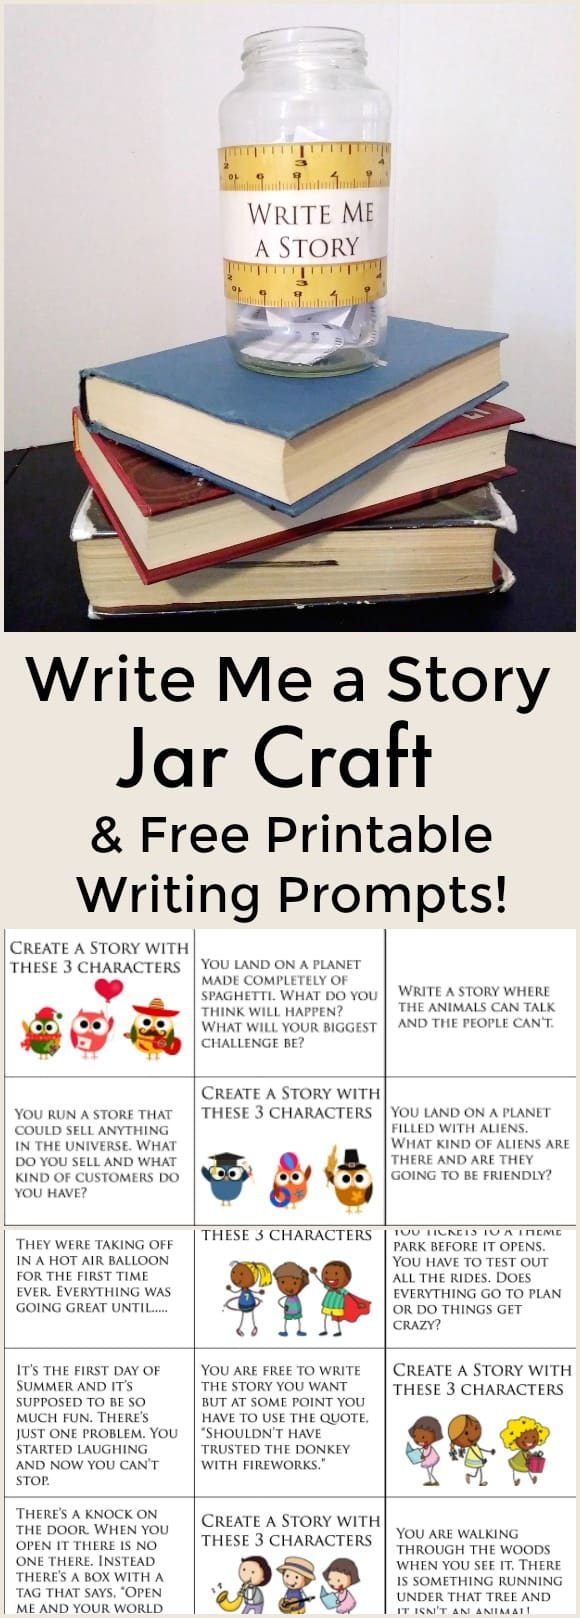 Write Me a Story Jar Craft and Free Printable Writing Prompts - Get kids writing with this fun printable and craft. These writing prompts will help kids start writing. Perfect printable for teachers or families. - #writing #homeschool #freeprintable #writingprompts #education #edchat #summerwriting #writing #freeprintable #educationalprintables